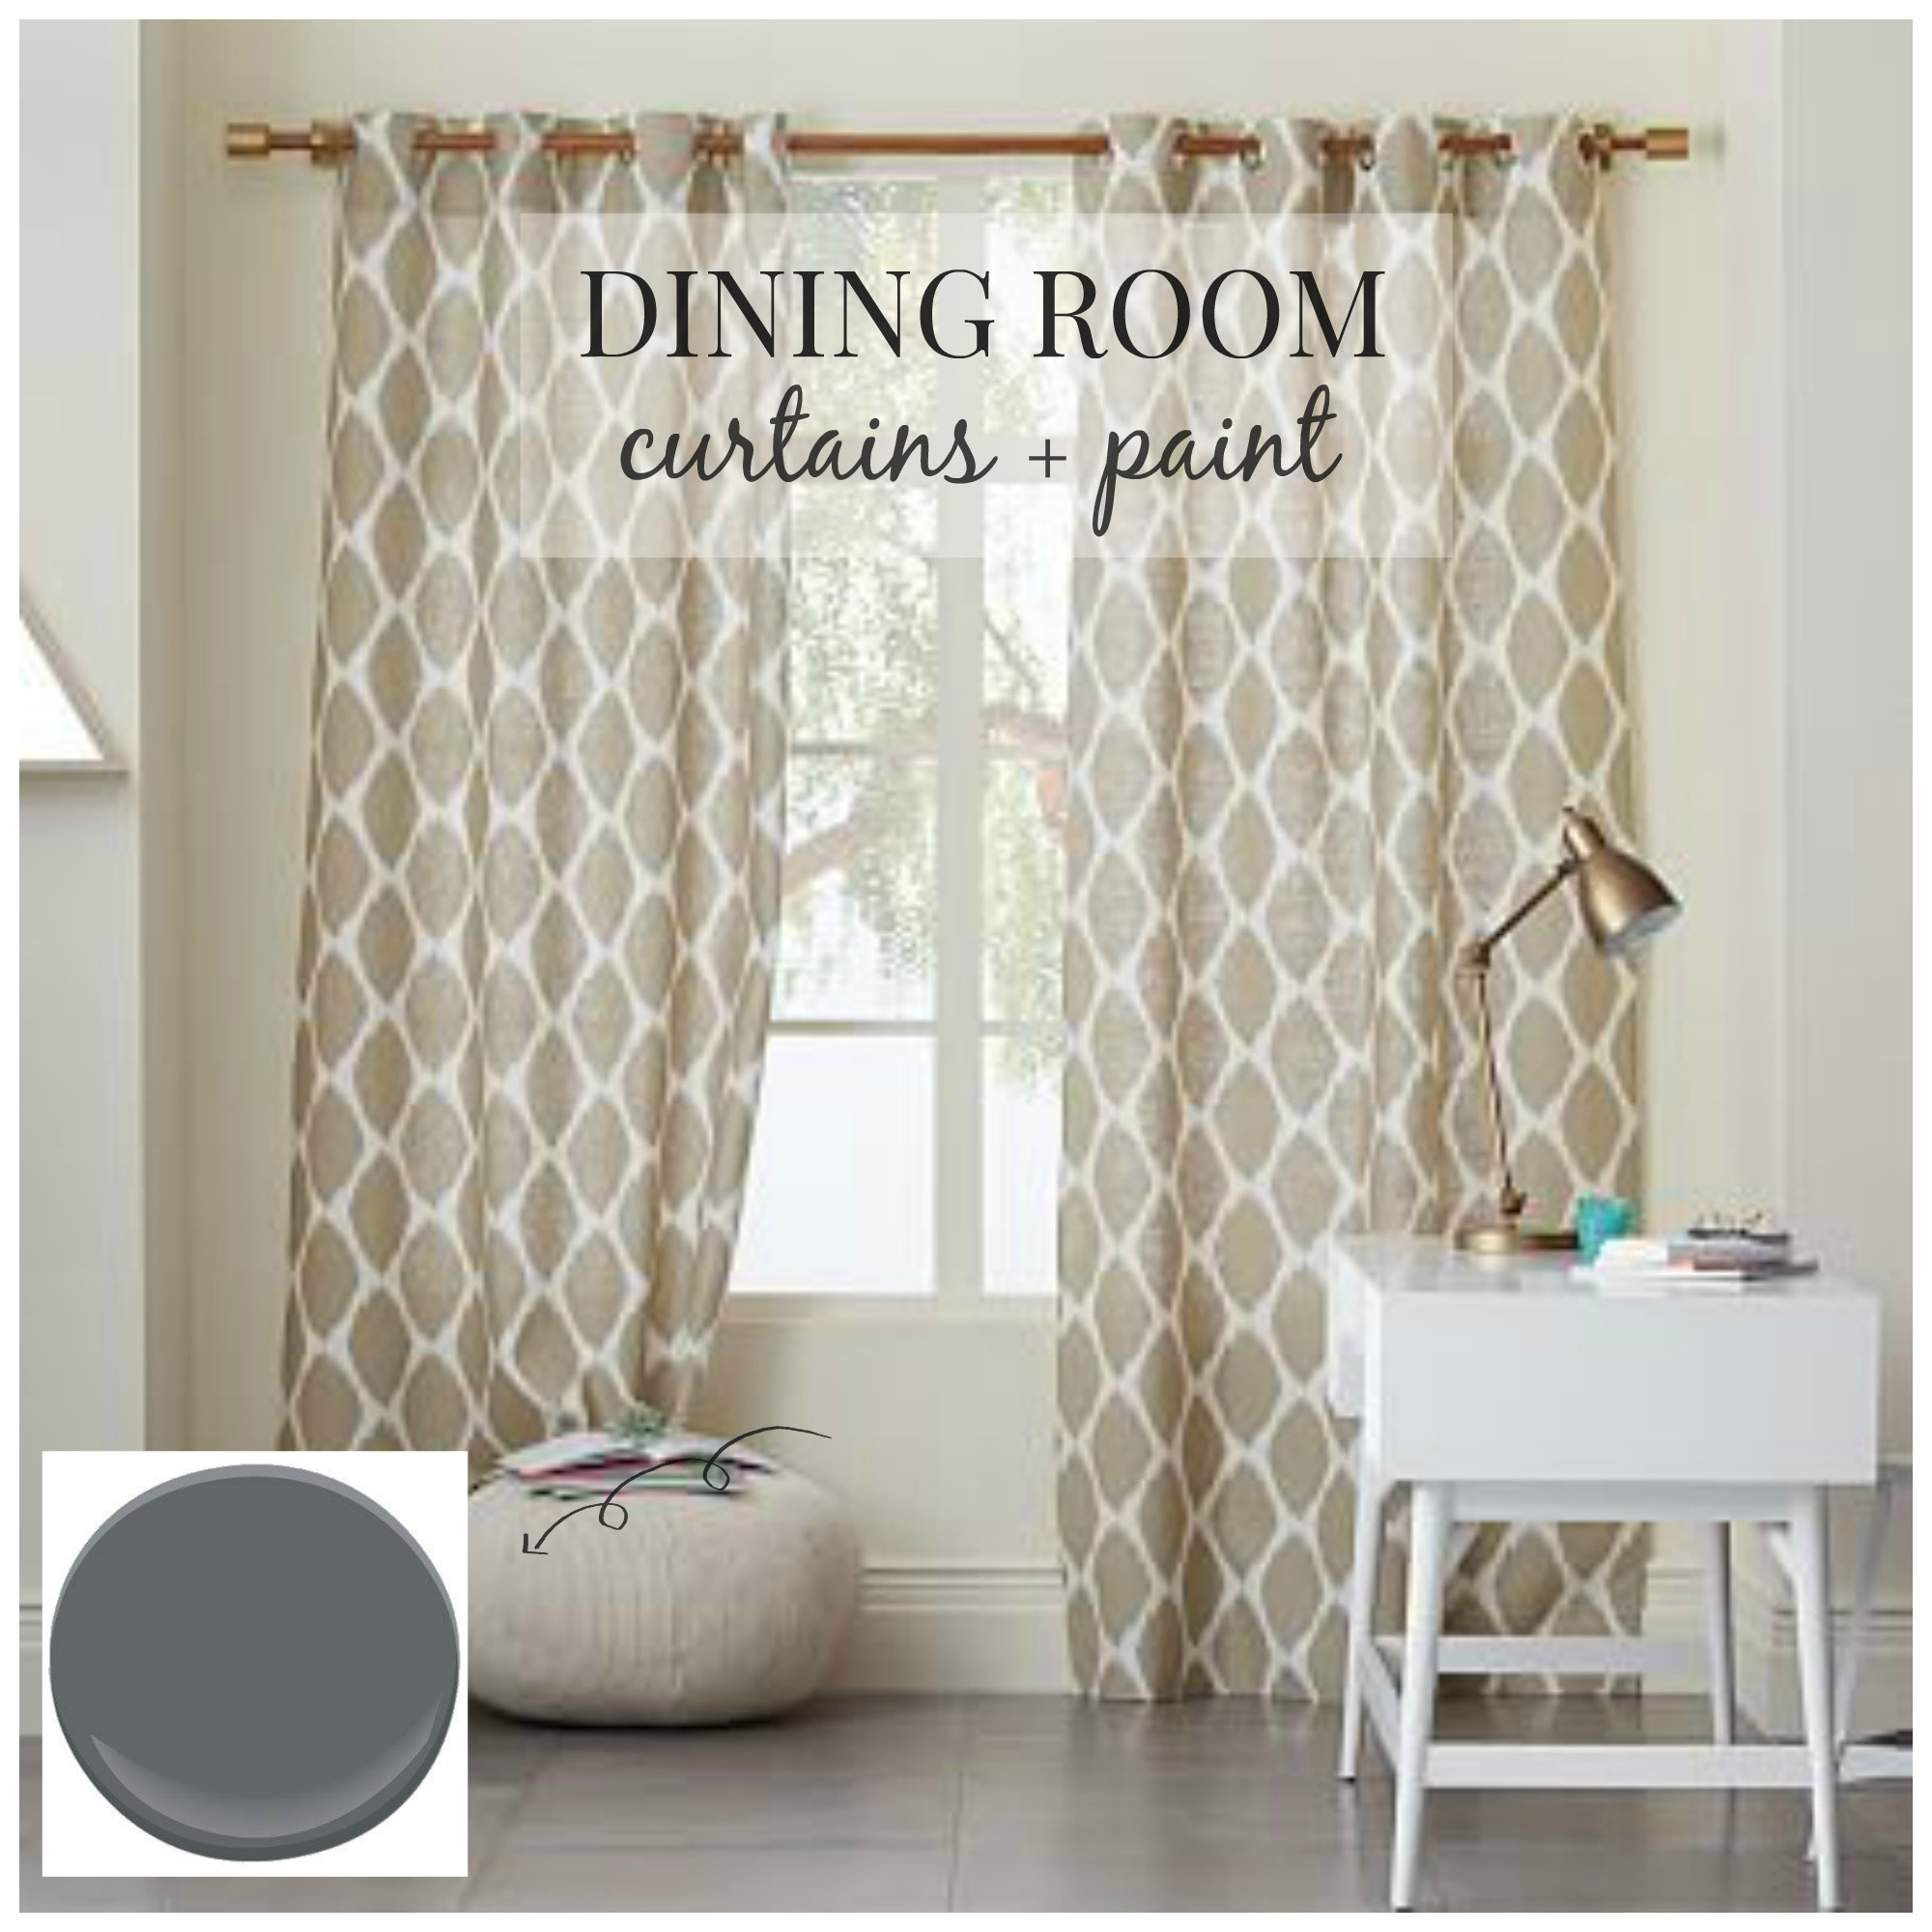 Dining room design curtains paint city farmhouse for Dinner room ideas